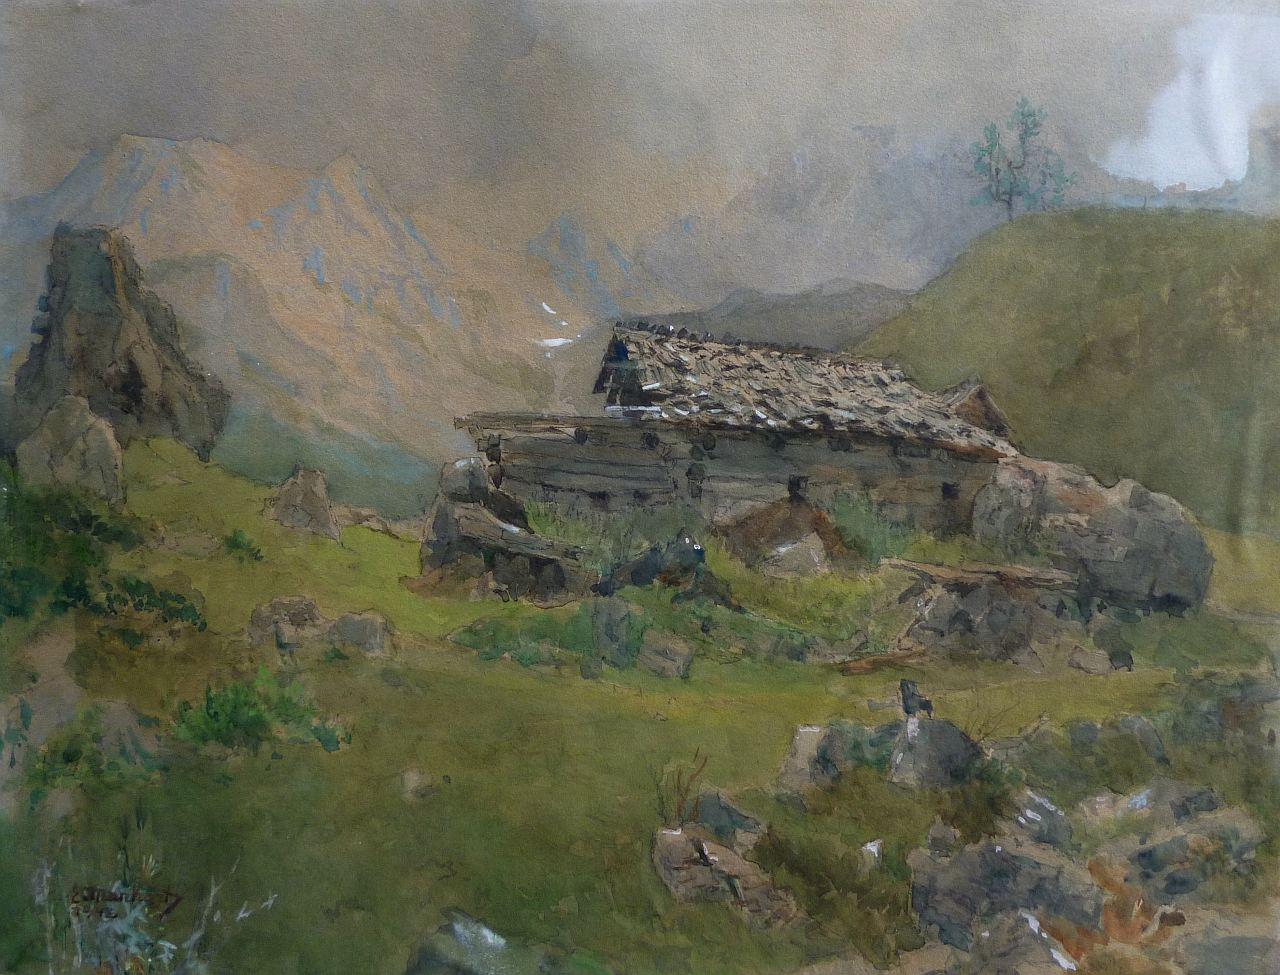 Eduard Manhart (1880-1945), Almhütte in the Karawanken, 1941, gouache, 35x46cm, signed and dated,